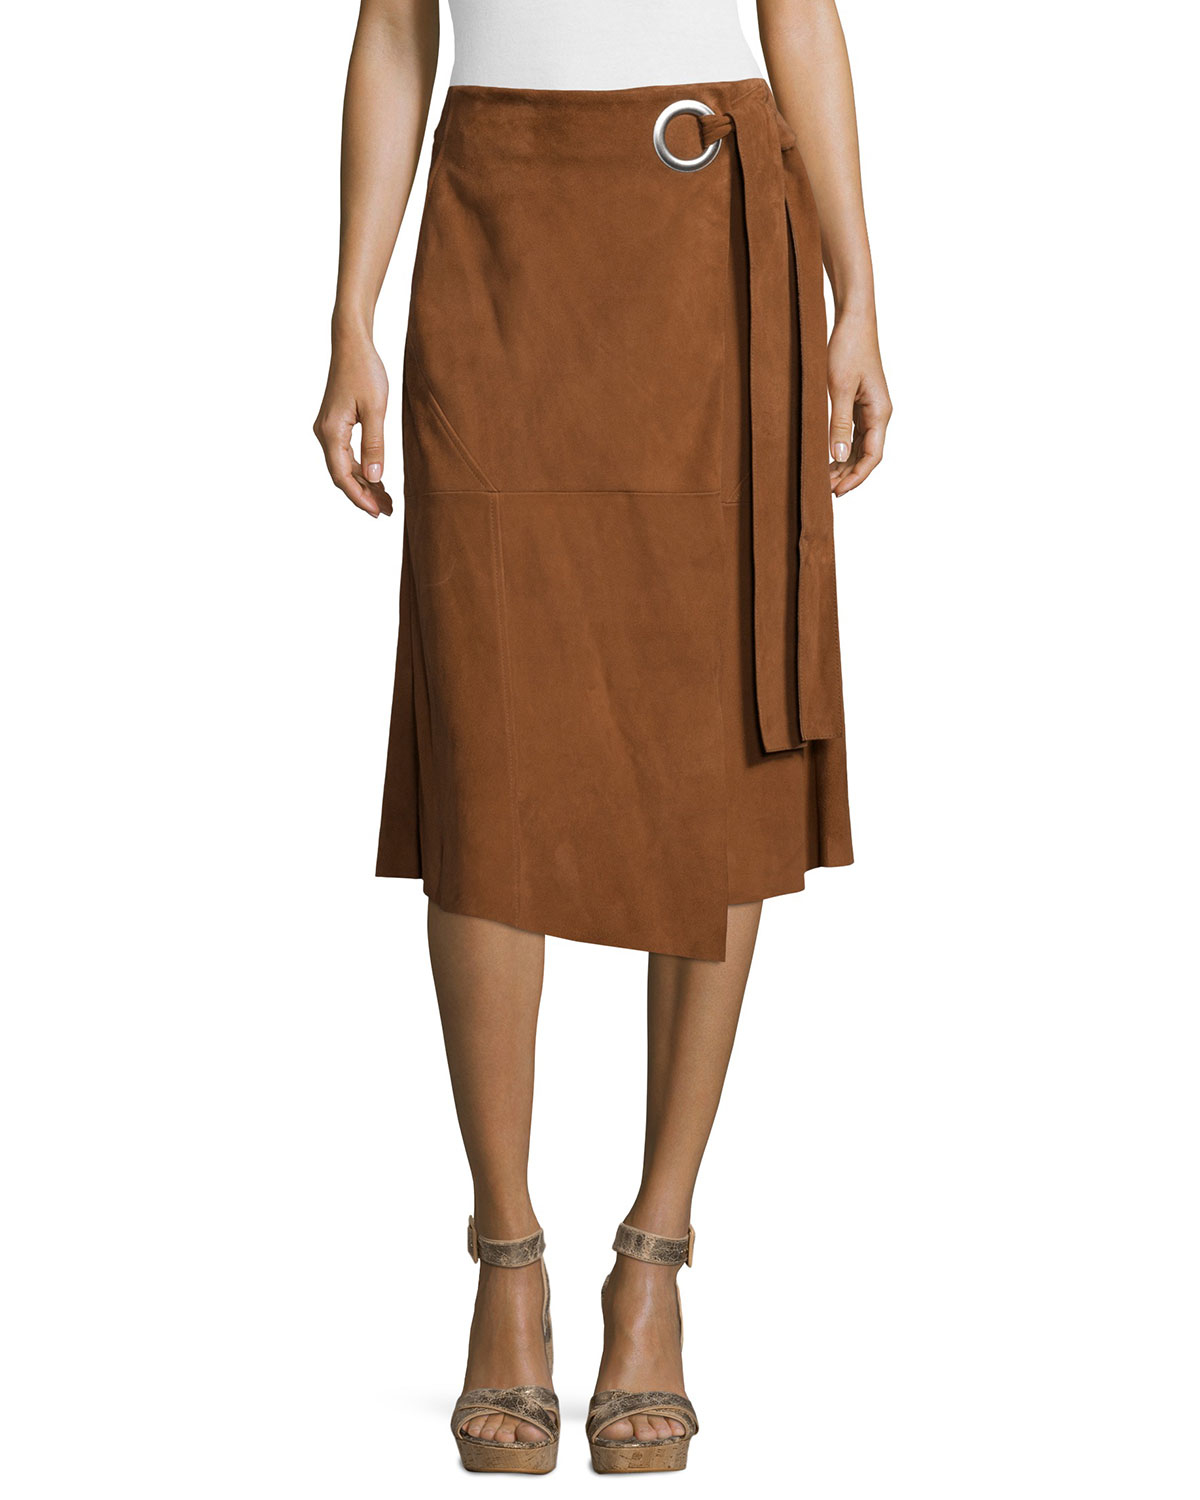 FREE SHIPPING AVAILABLE! Shop xianggangdishini.gq and save on Brown Skirts.